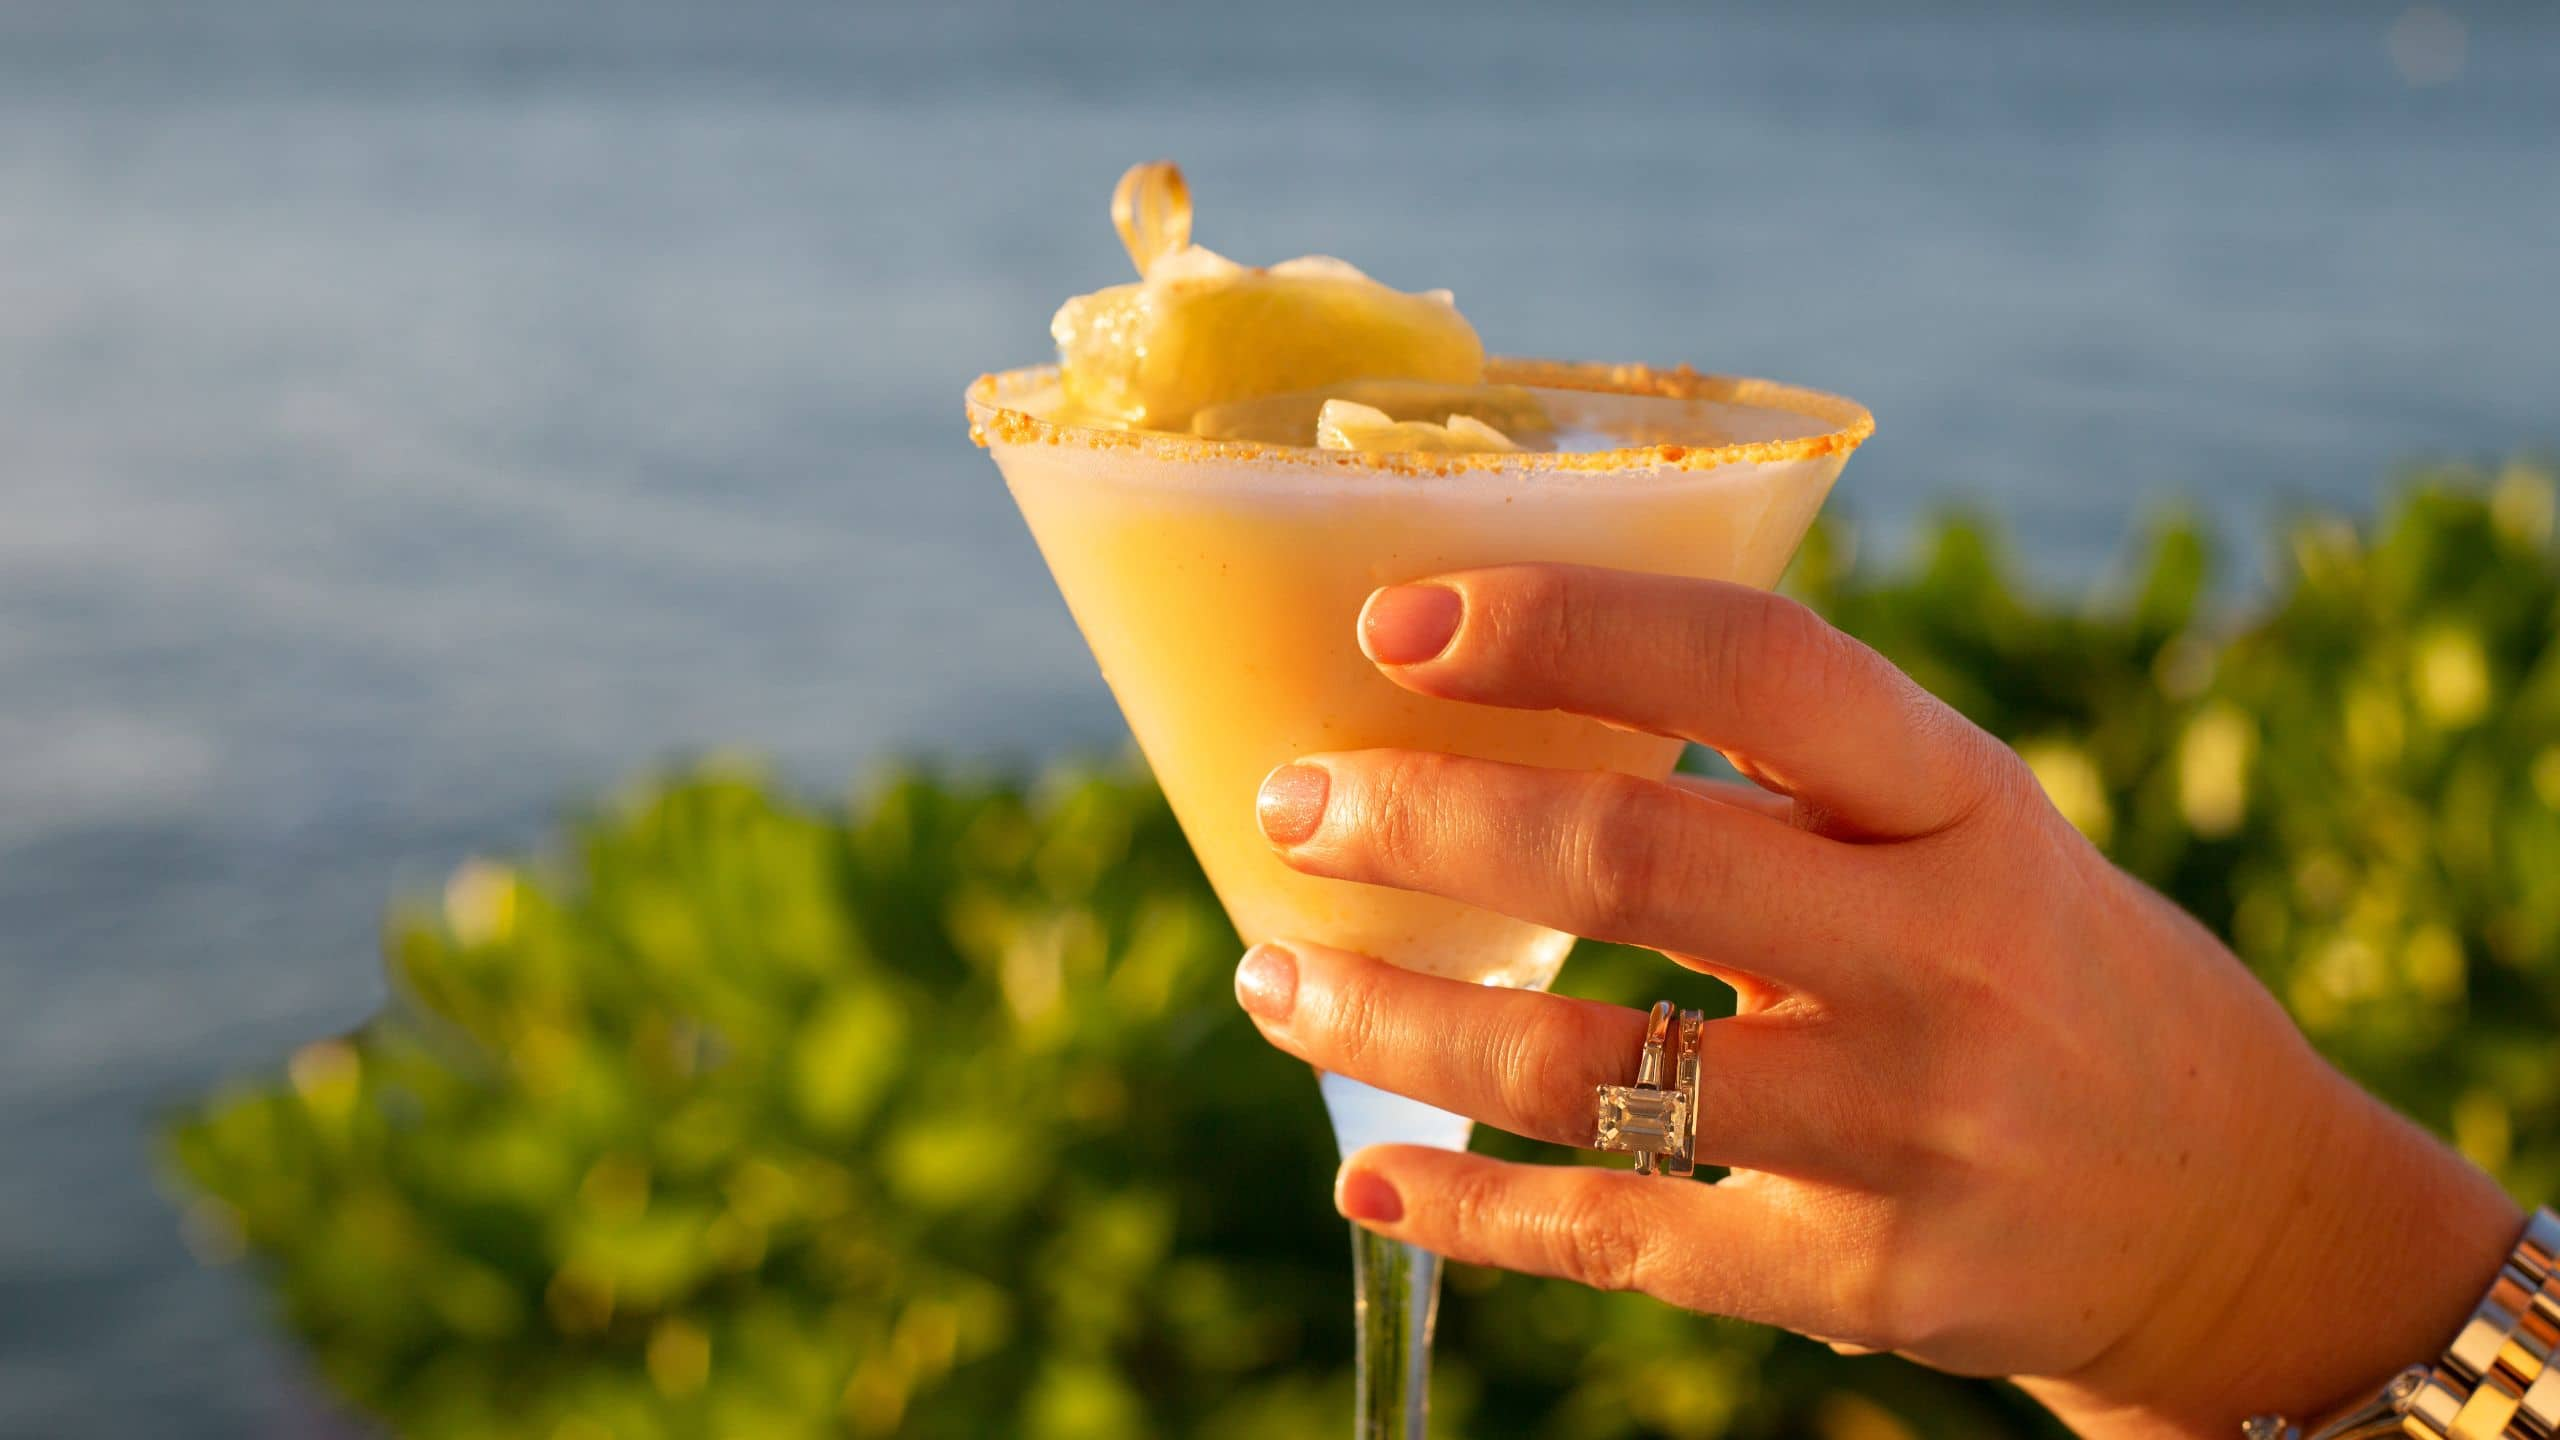 Enjoy a relaxing drink at Blue Mojito